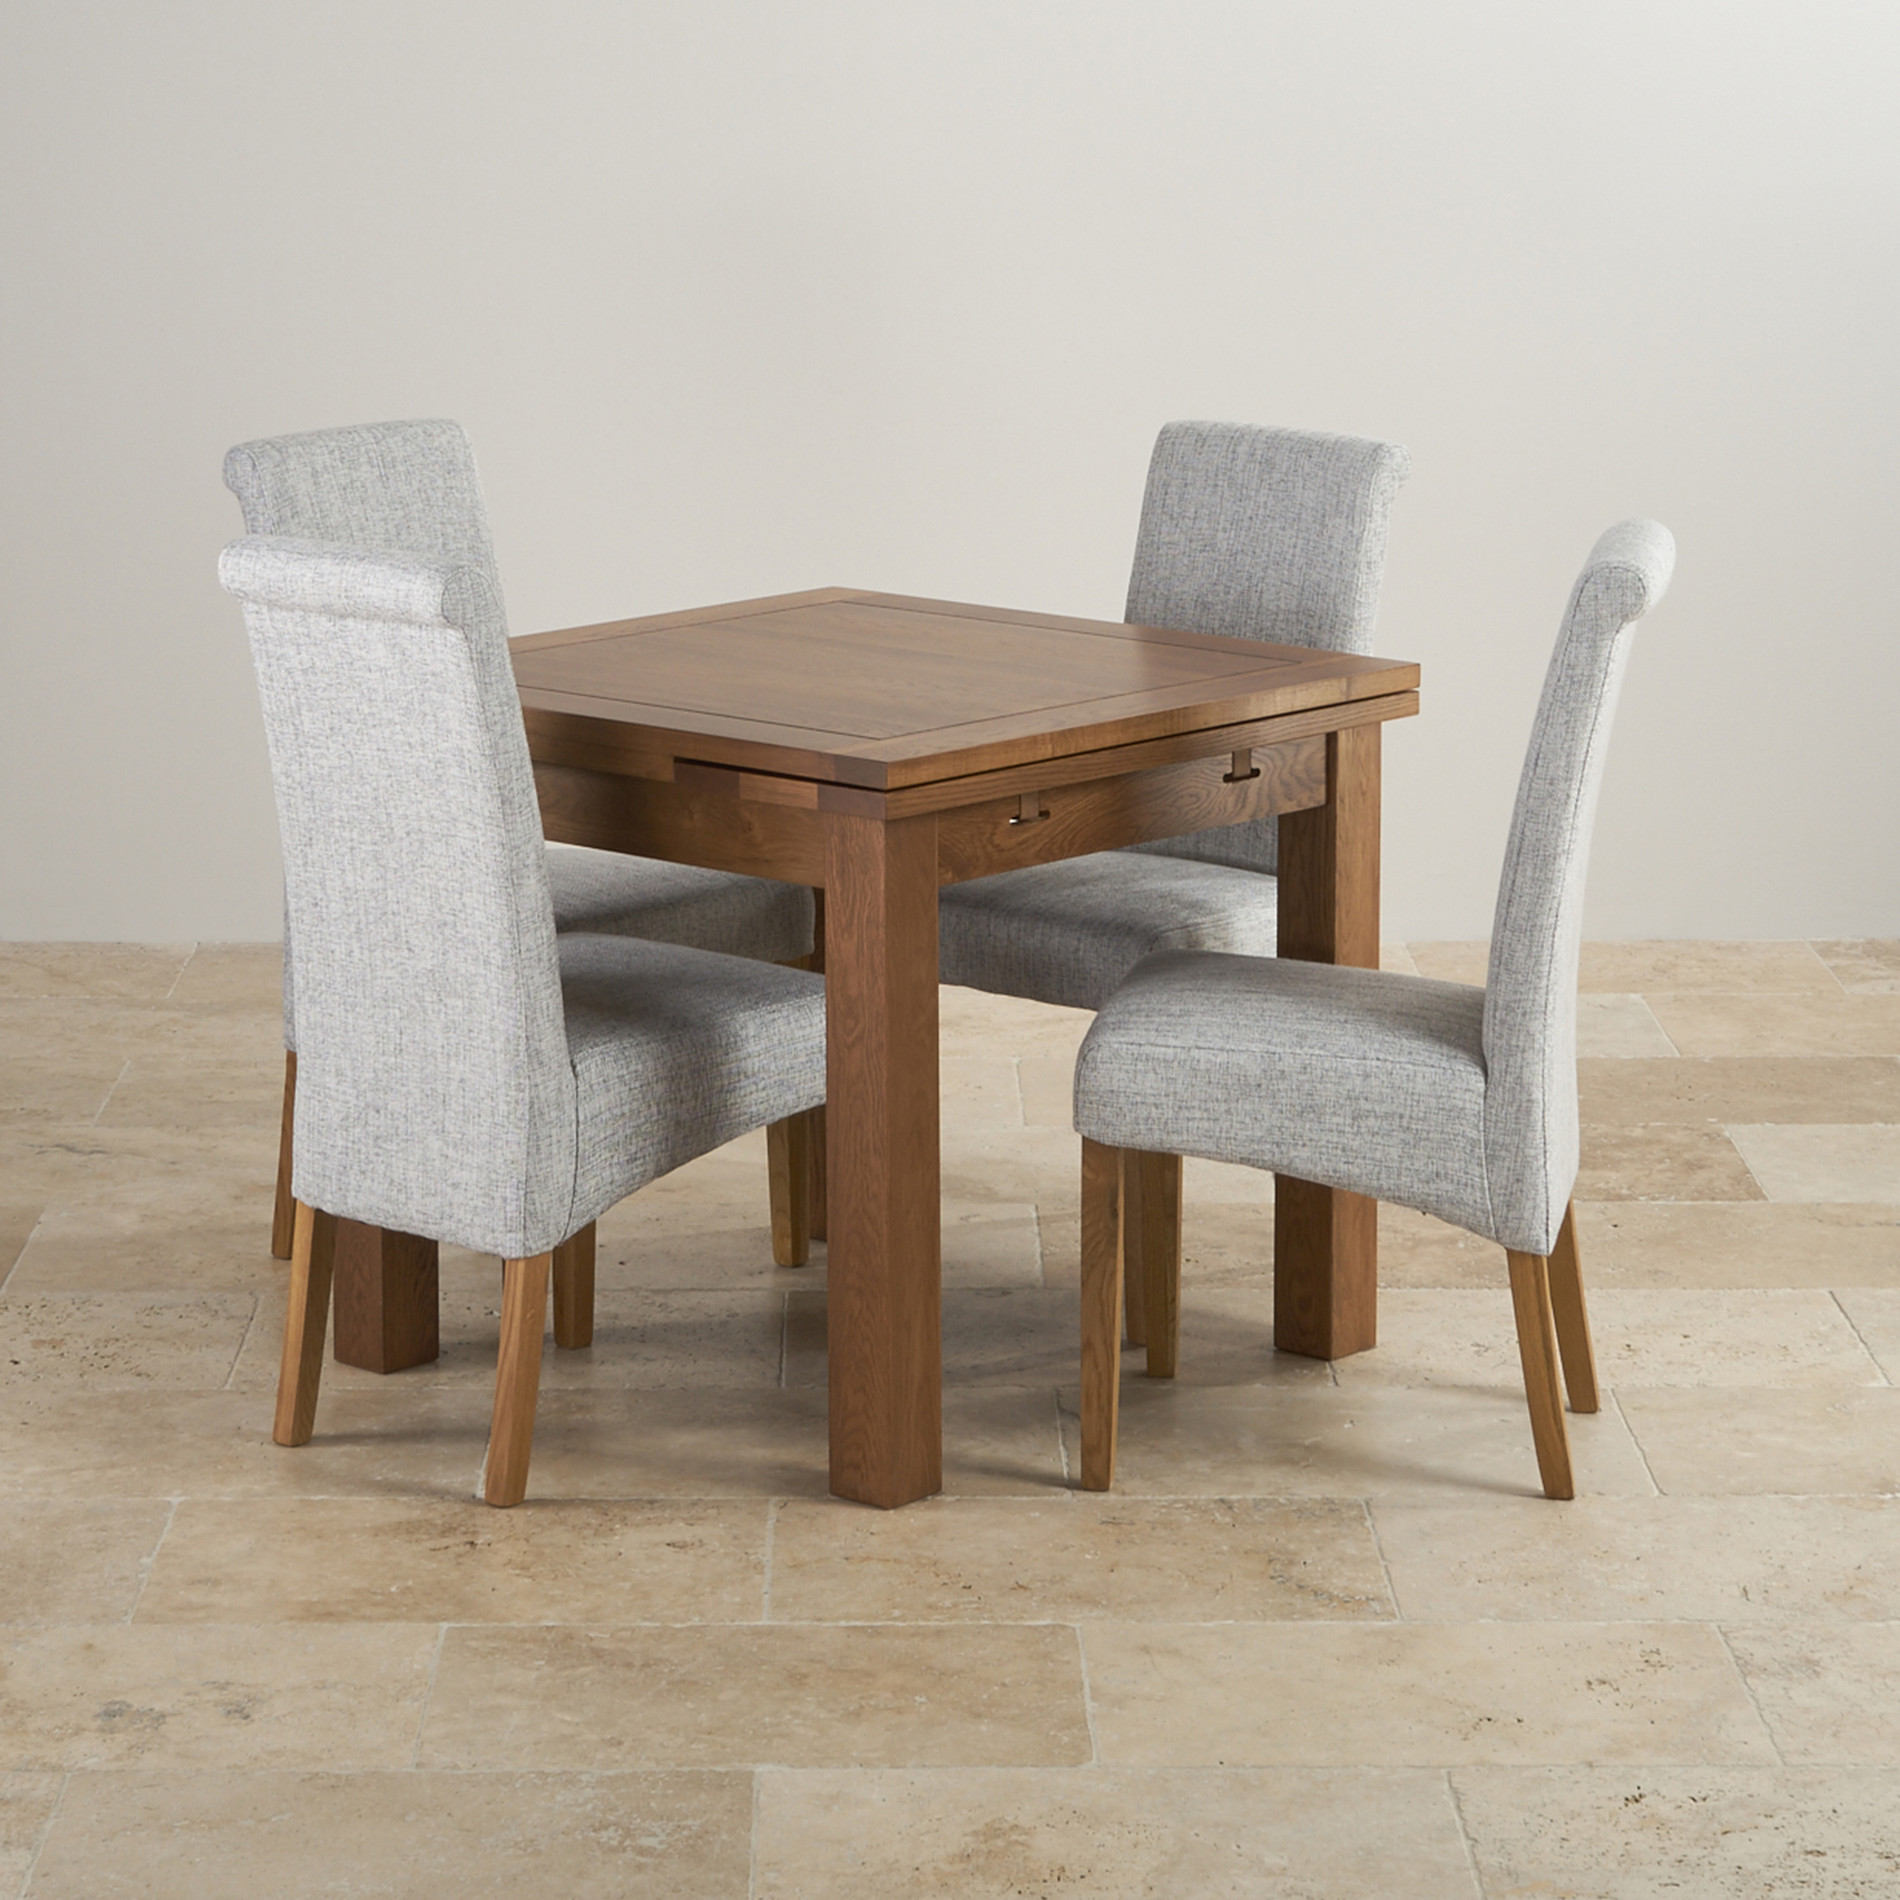 Extendable Dining Set In Rustic Brushed Solid Oak: Rustic Solid Oak 3ft Dining Table With 4 Grey Fabric Chairs